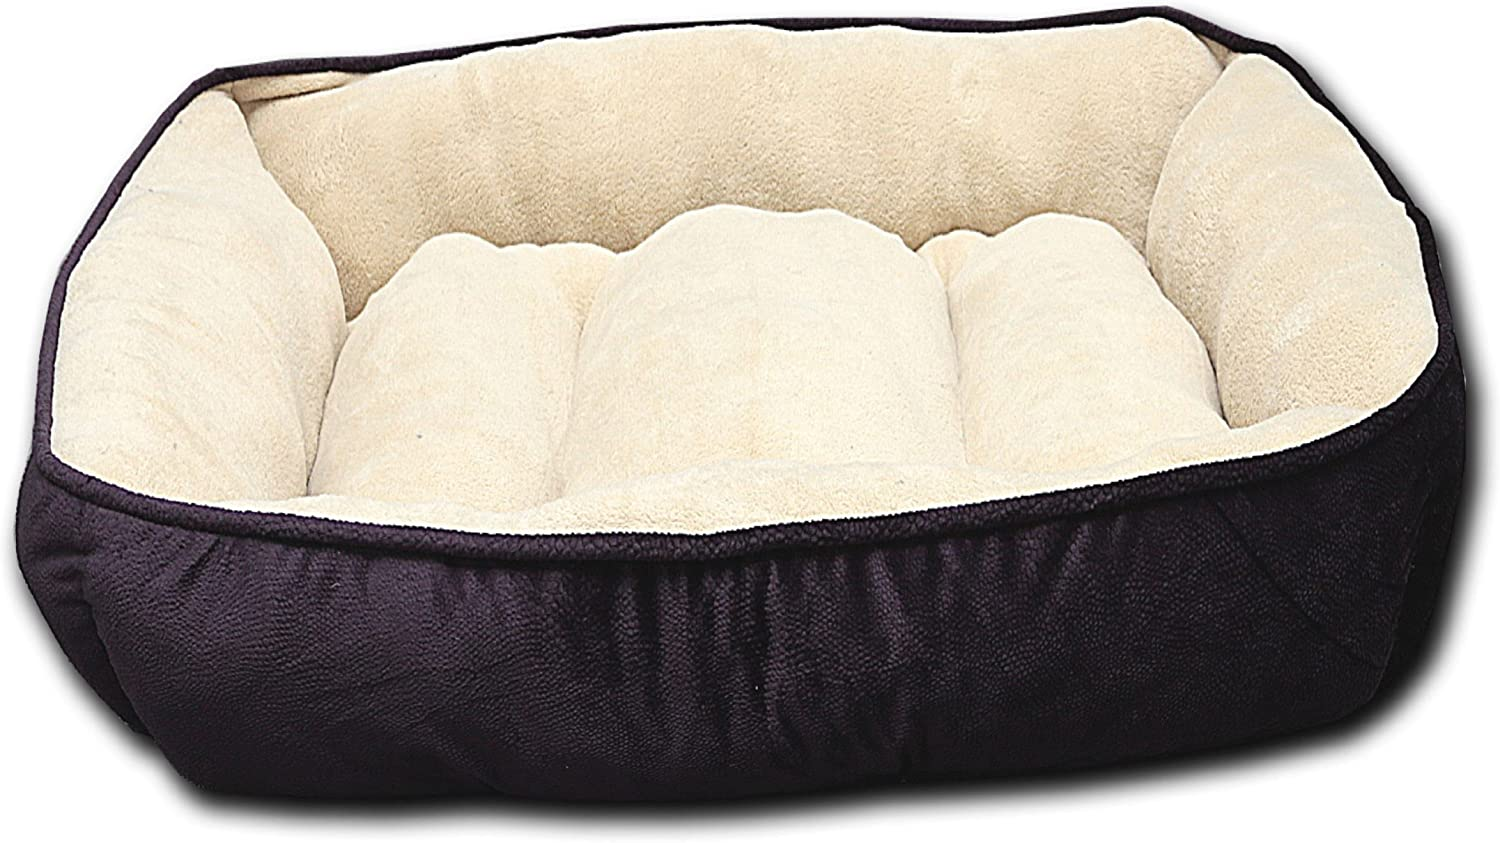 HappyCare Textiles HCT REC002 Luxury Embossed Rectangle Micro Mink Dog and Pet Bed, Large, Burn Out Purple